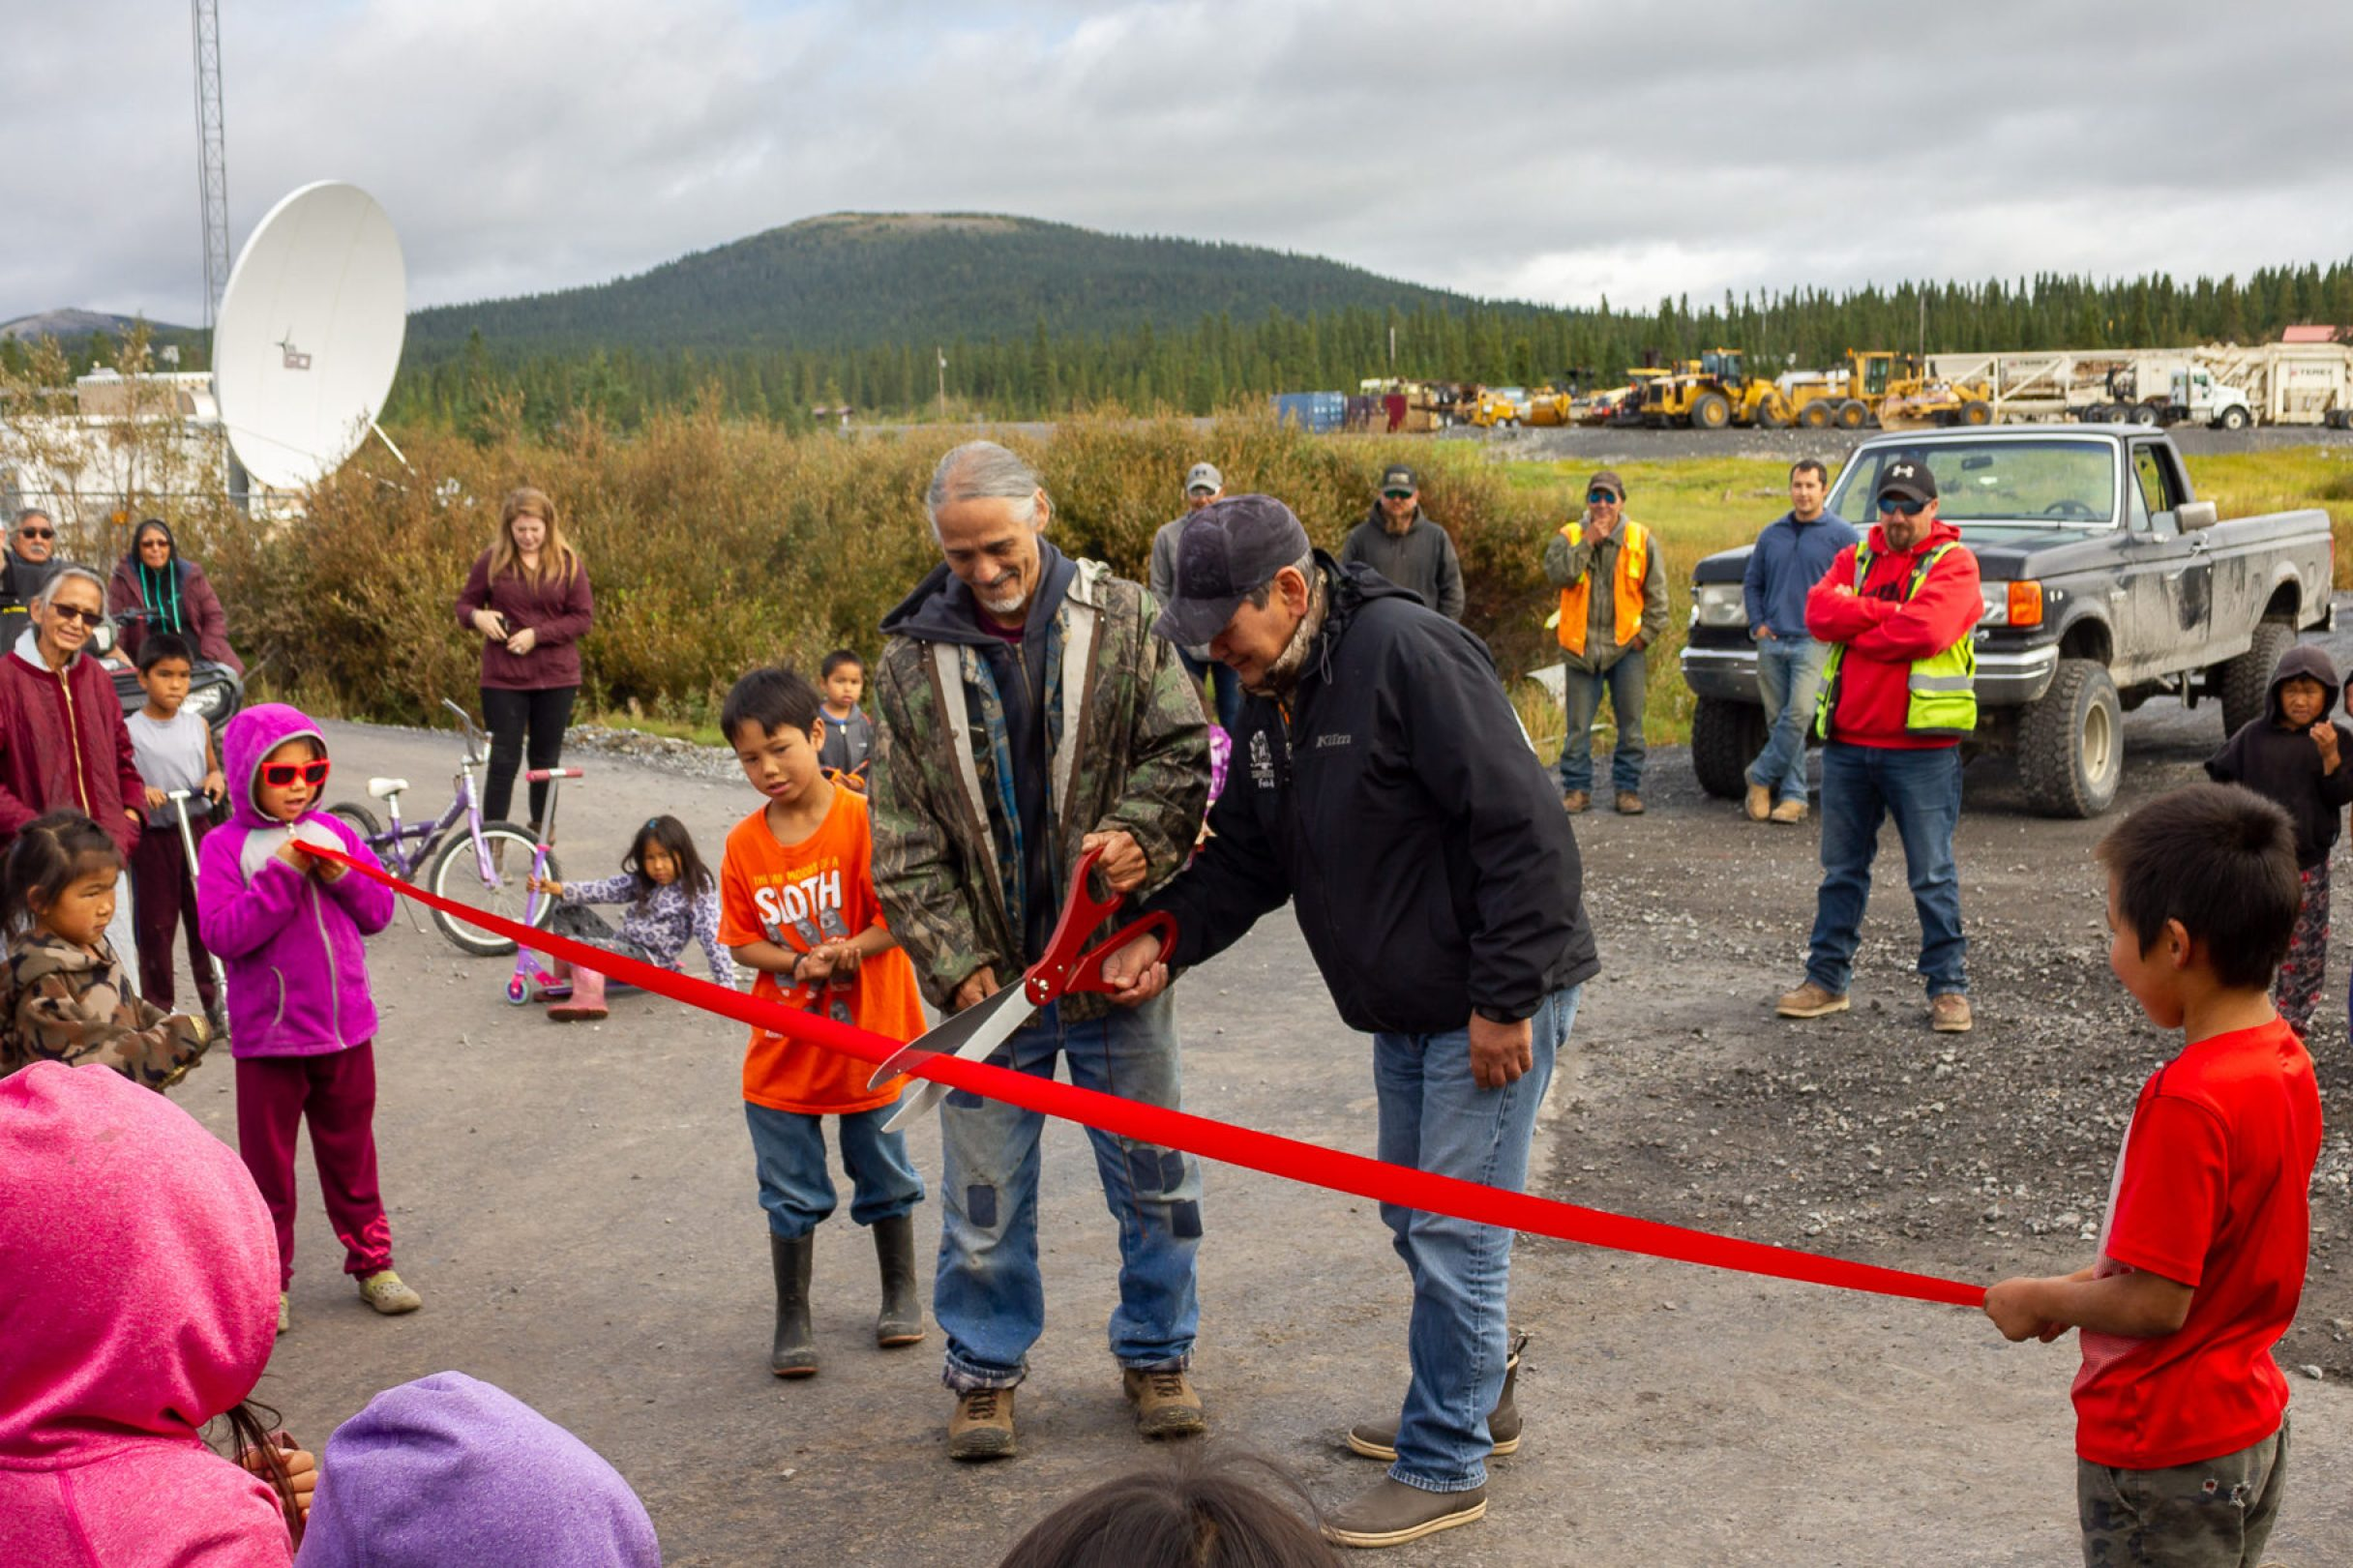 Dignitaries cut a ribbon before a gathered crowd in a small Alaska community